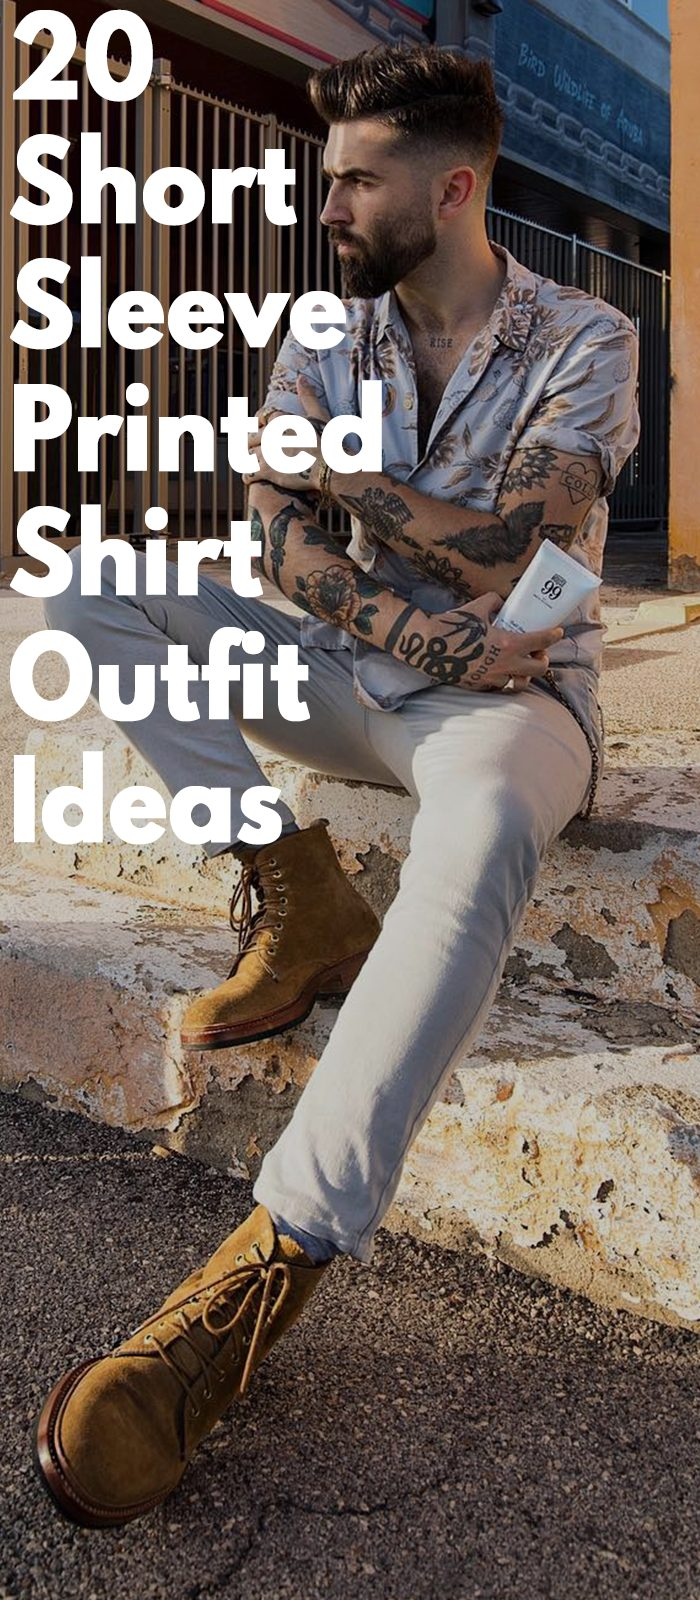 20 Short Sleeve Printed Shirt Outfit Ideas